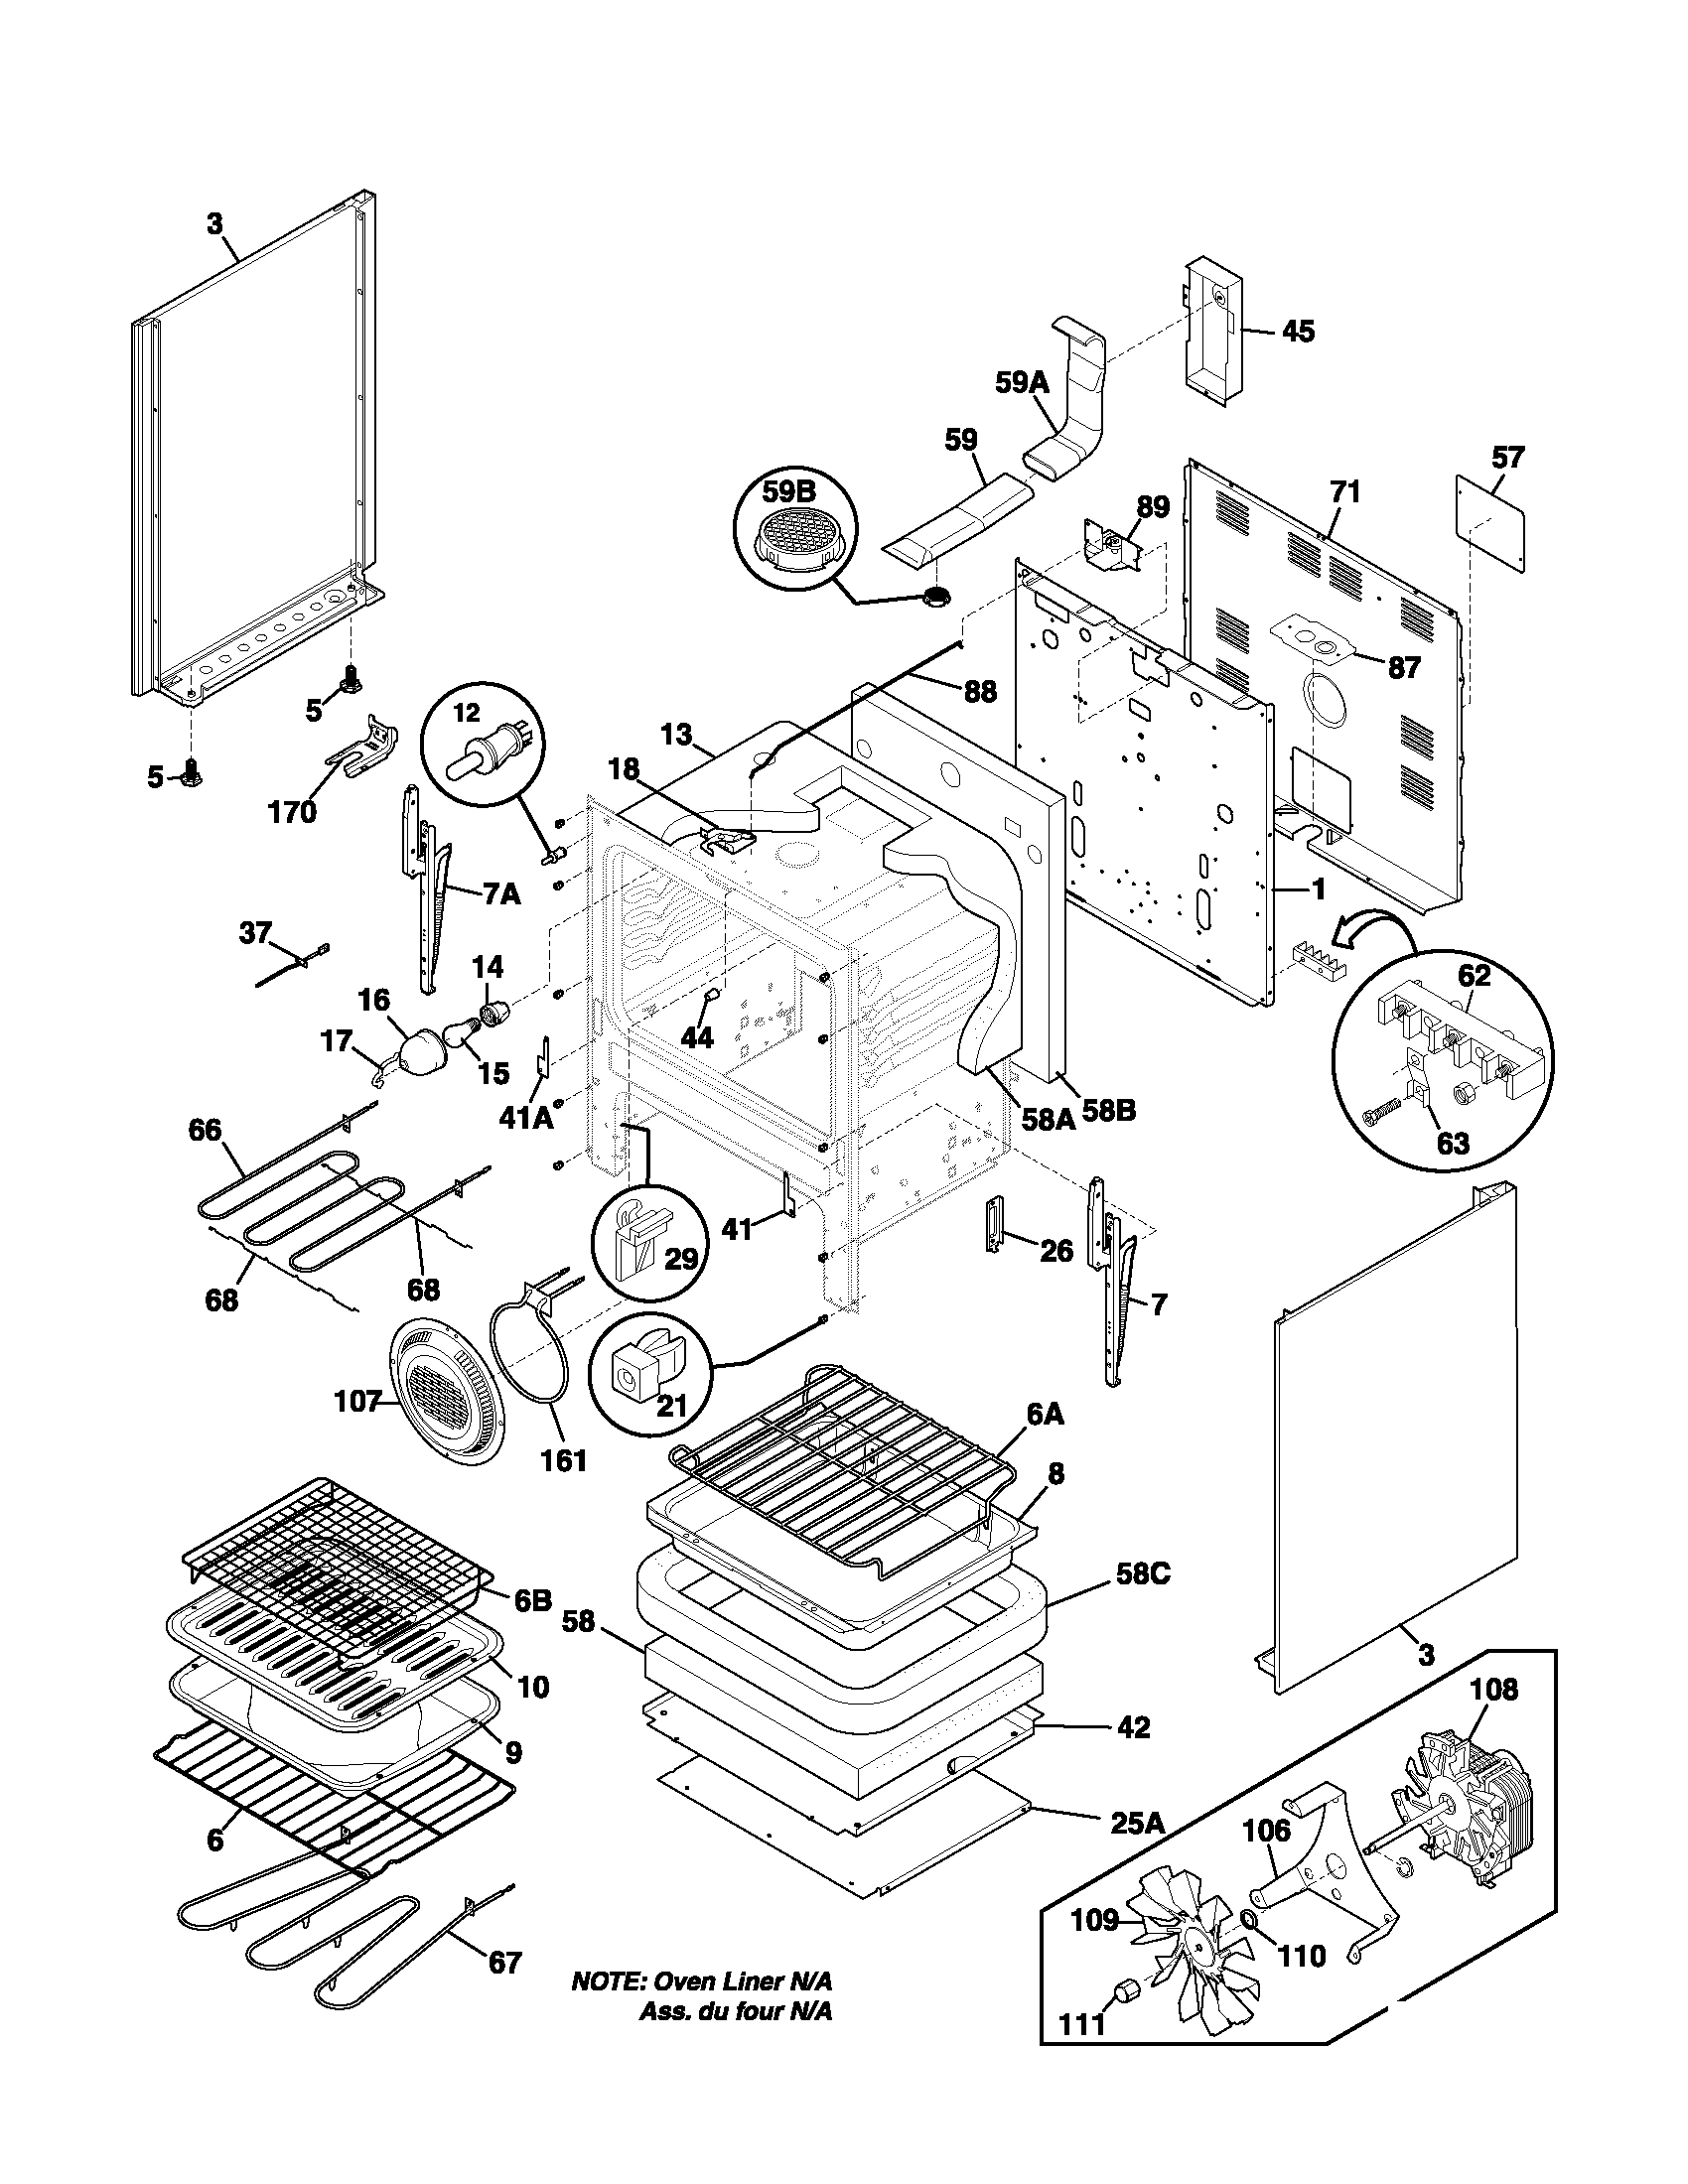 Kenmore 80 Series Dryer Wiring Schematic likewise 27b64726ed05933a7b0ebf1781e1ac9b also Whirlpool Washing Machine Motor Wiring Diagram additionally T16357449 Samsung washing machine wf8550nhw further Index. on wiring diagram indesit washing machine